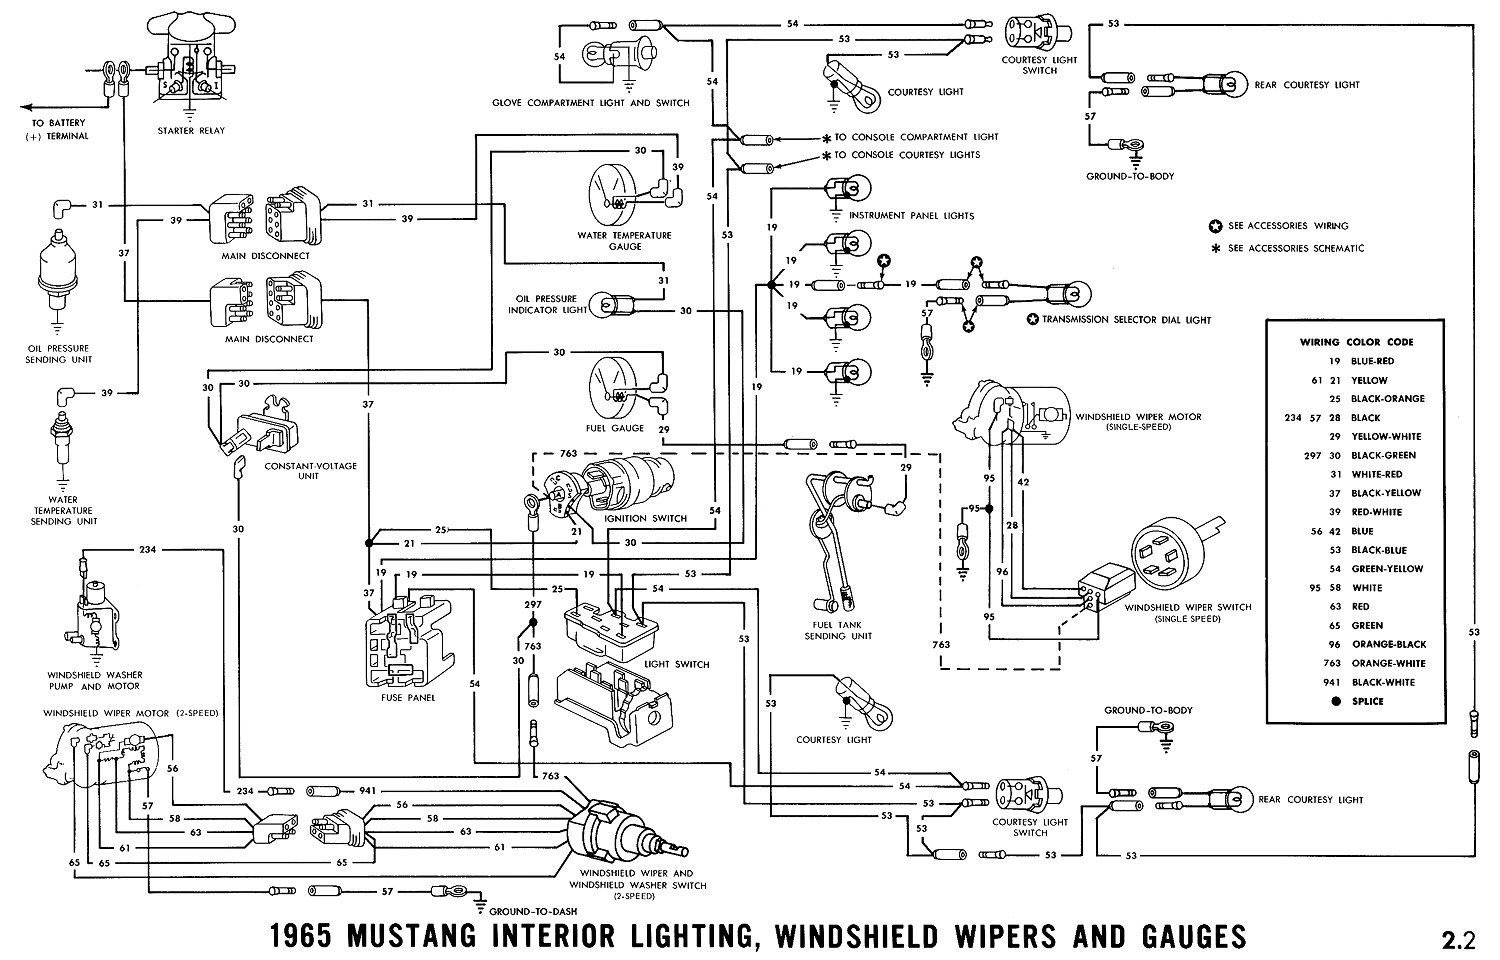 1965g 1965 mustang wiring diagrams average joe restoration 1968 mustang ignition wiring diagram at bakdesigns.co